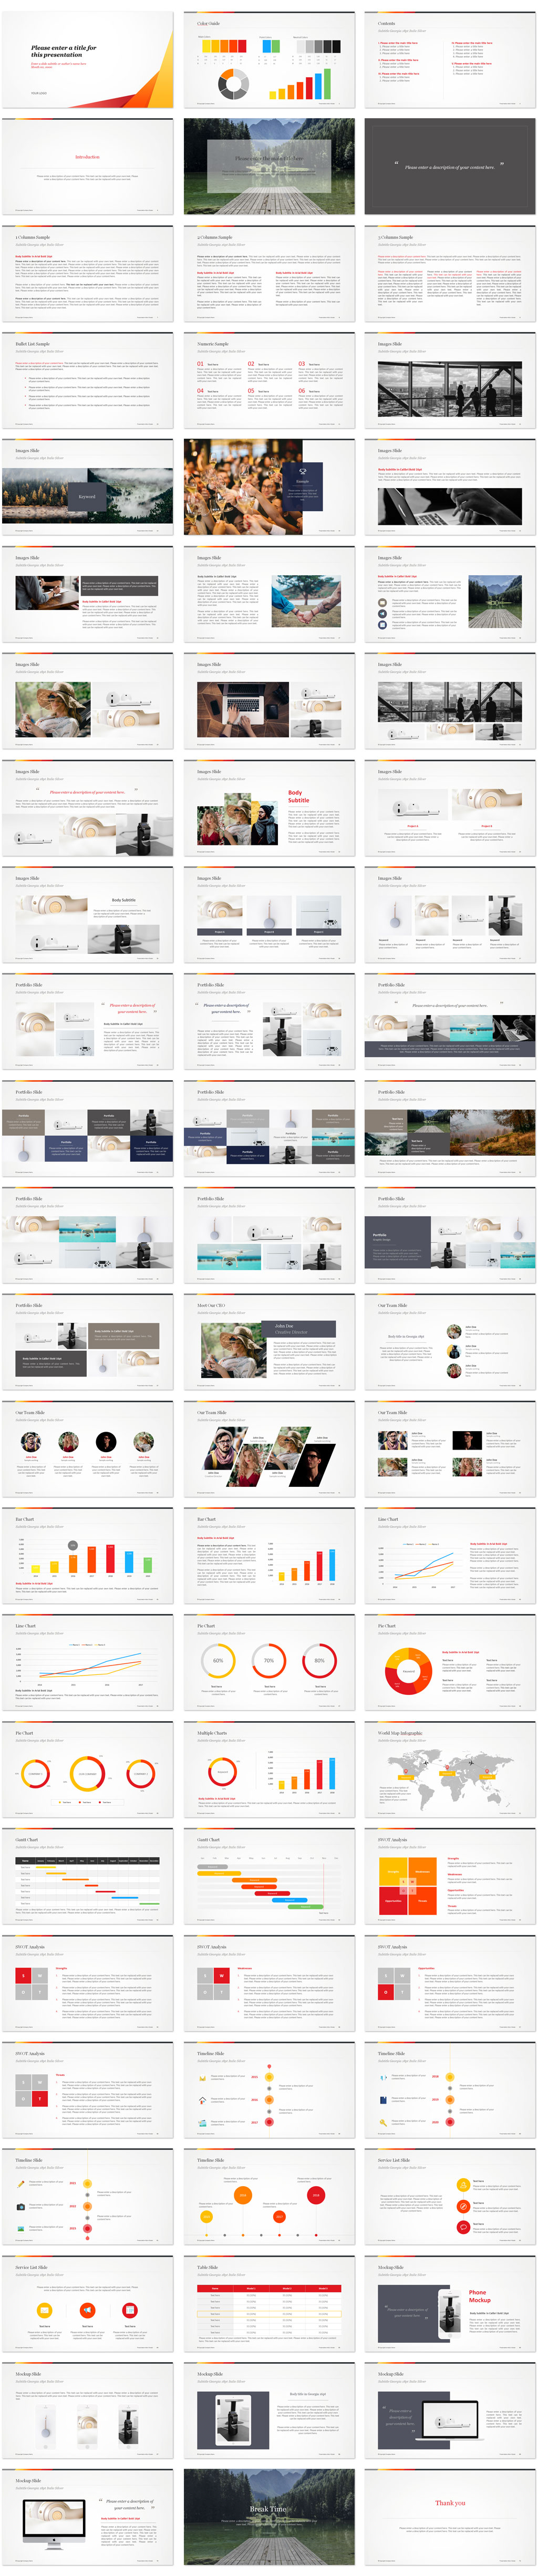 Trendy PowerPoint Templates